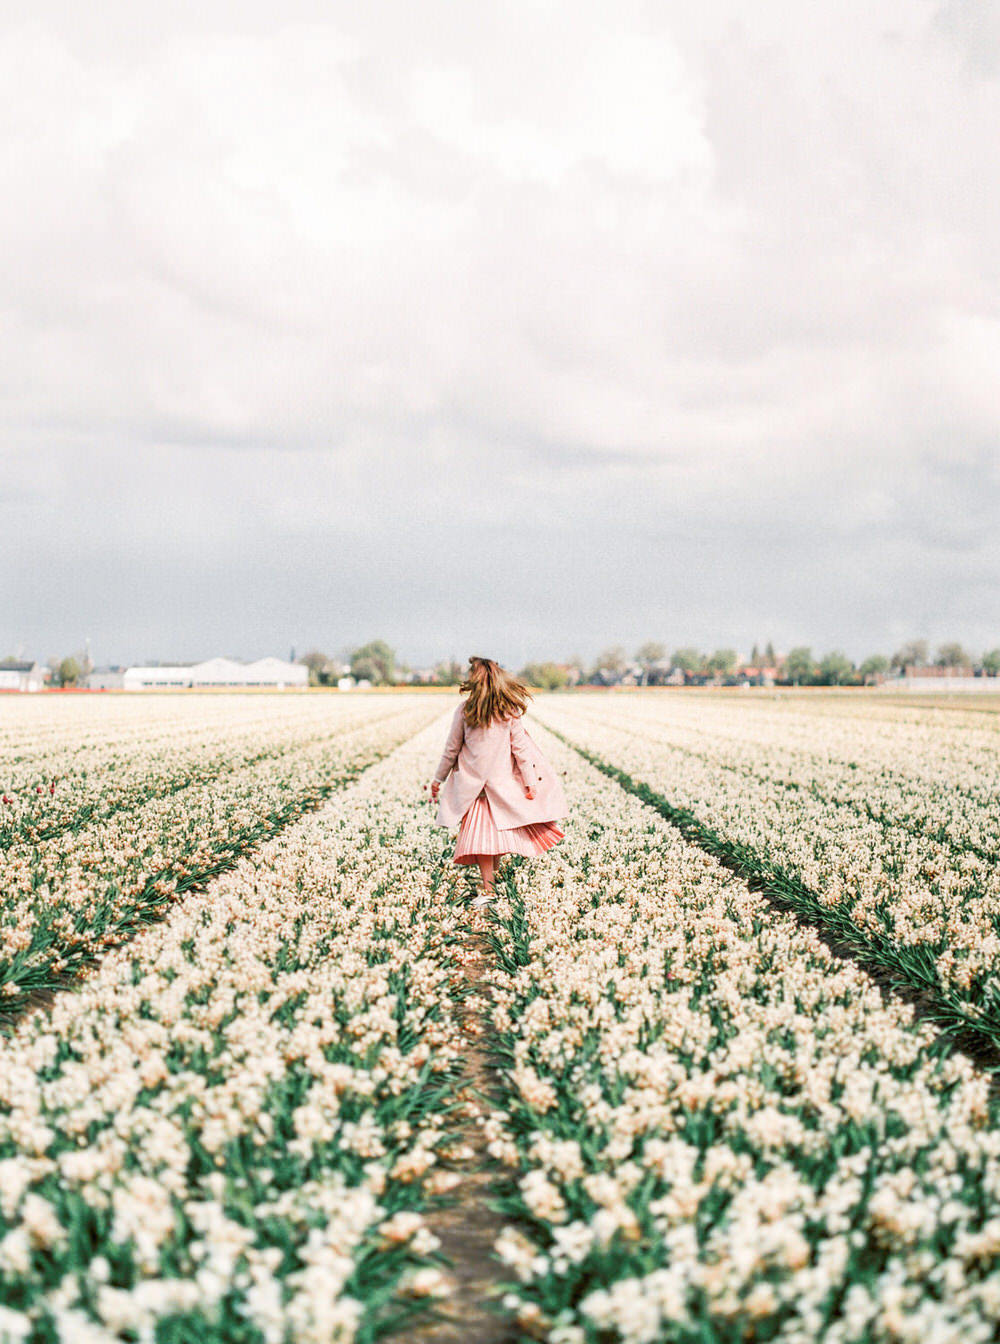 Netherlands Amsterdam Flower Field Portrait Photography - CHYMO